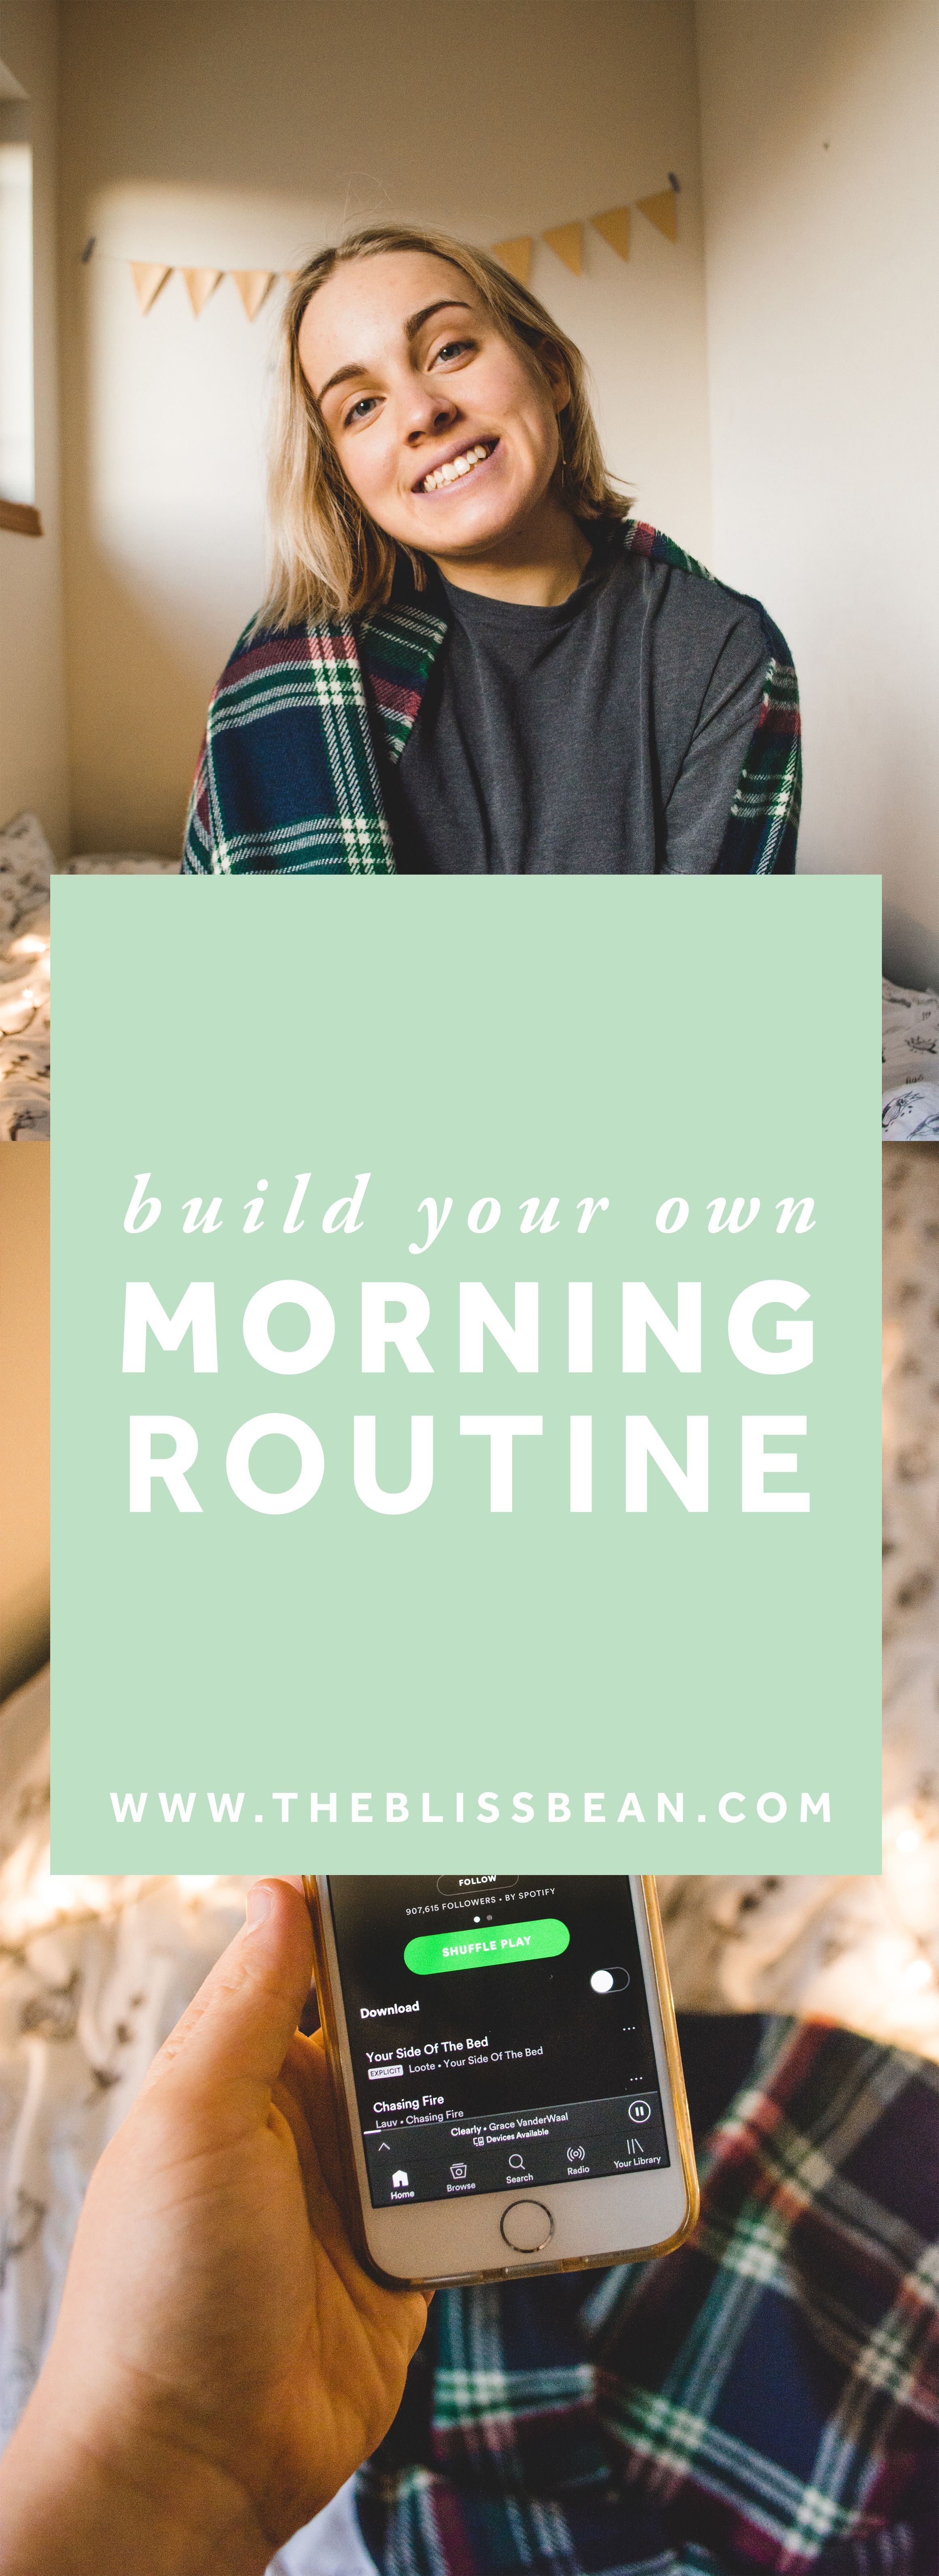 Build Your Own Morning Routine With Images